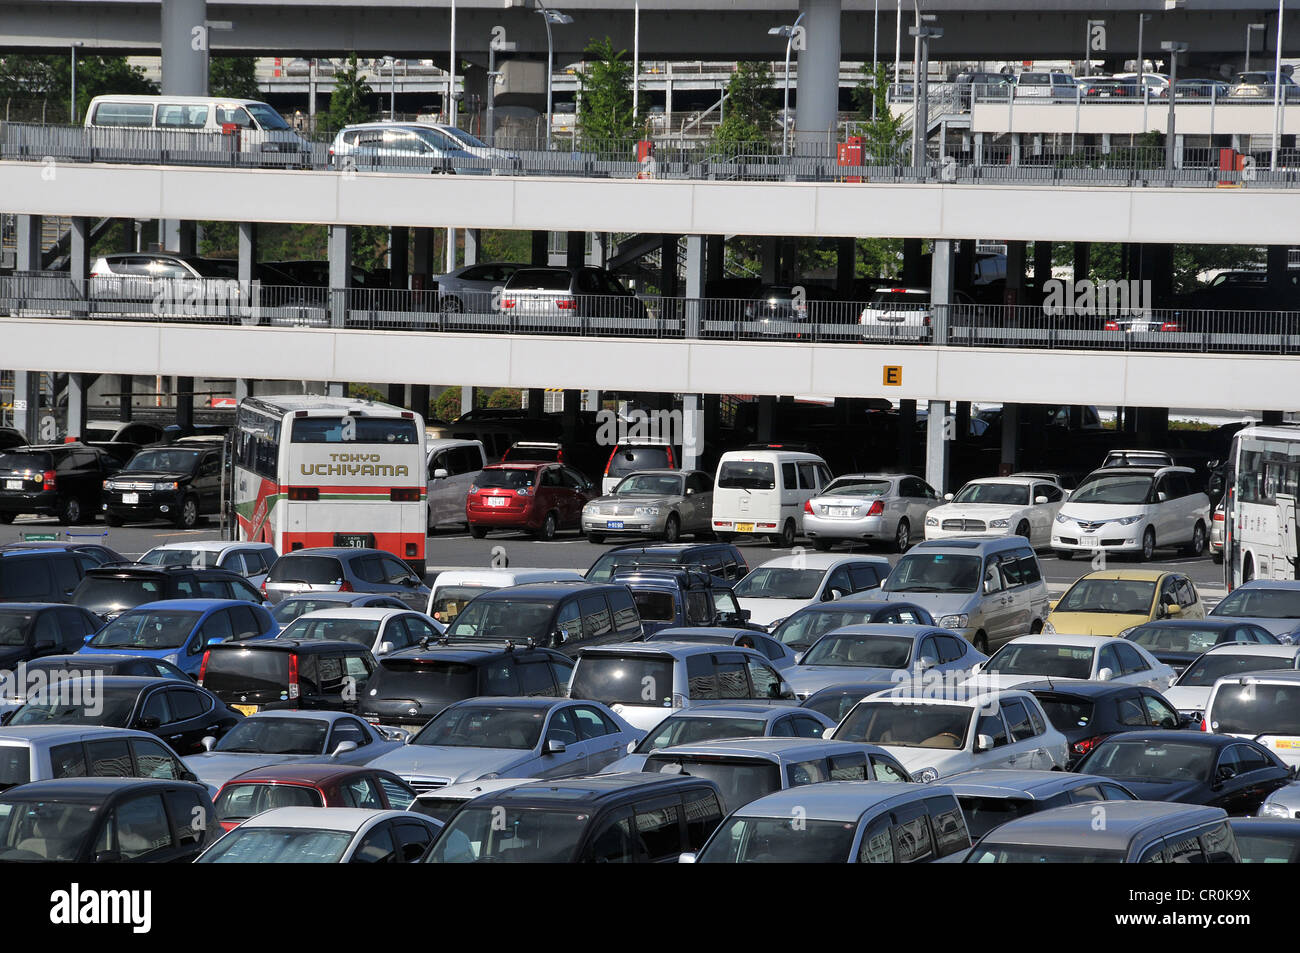 cars parked, Narita International airport, Japan - Stock Image